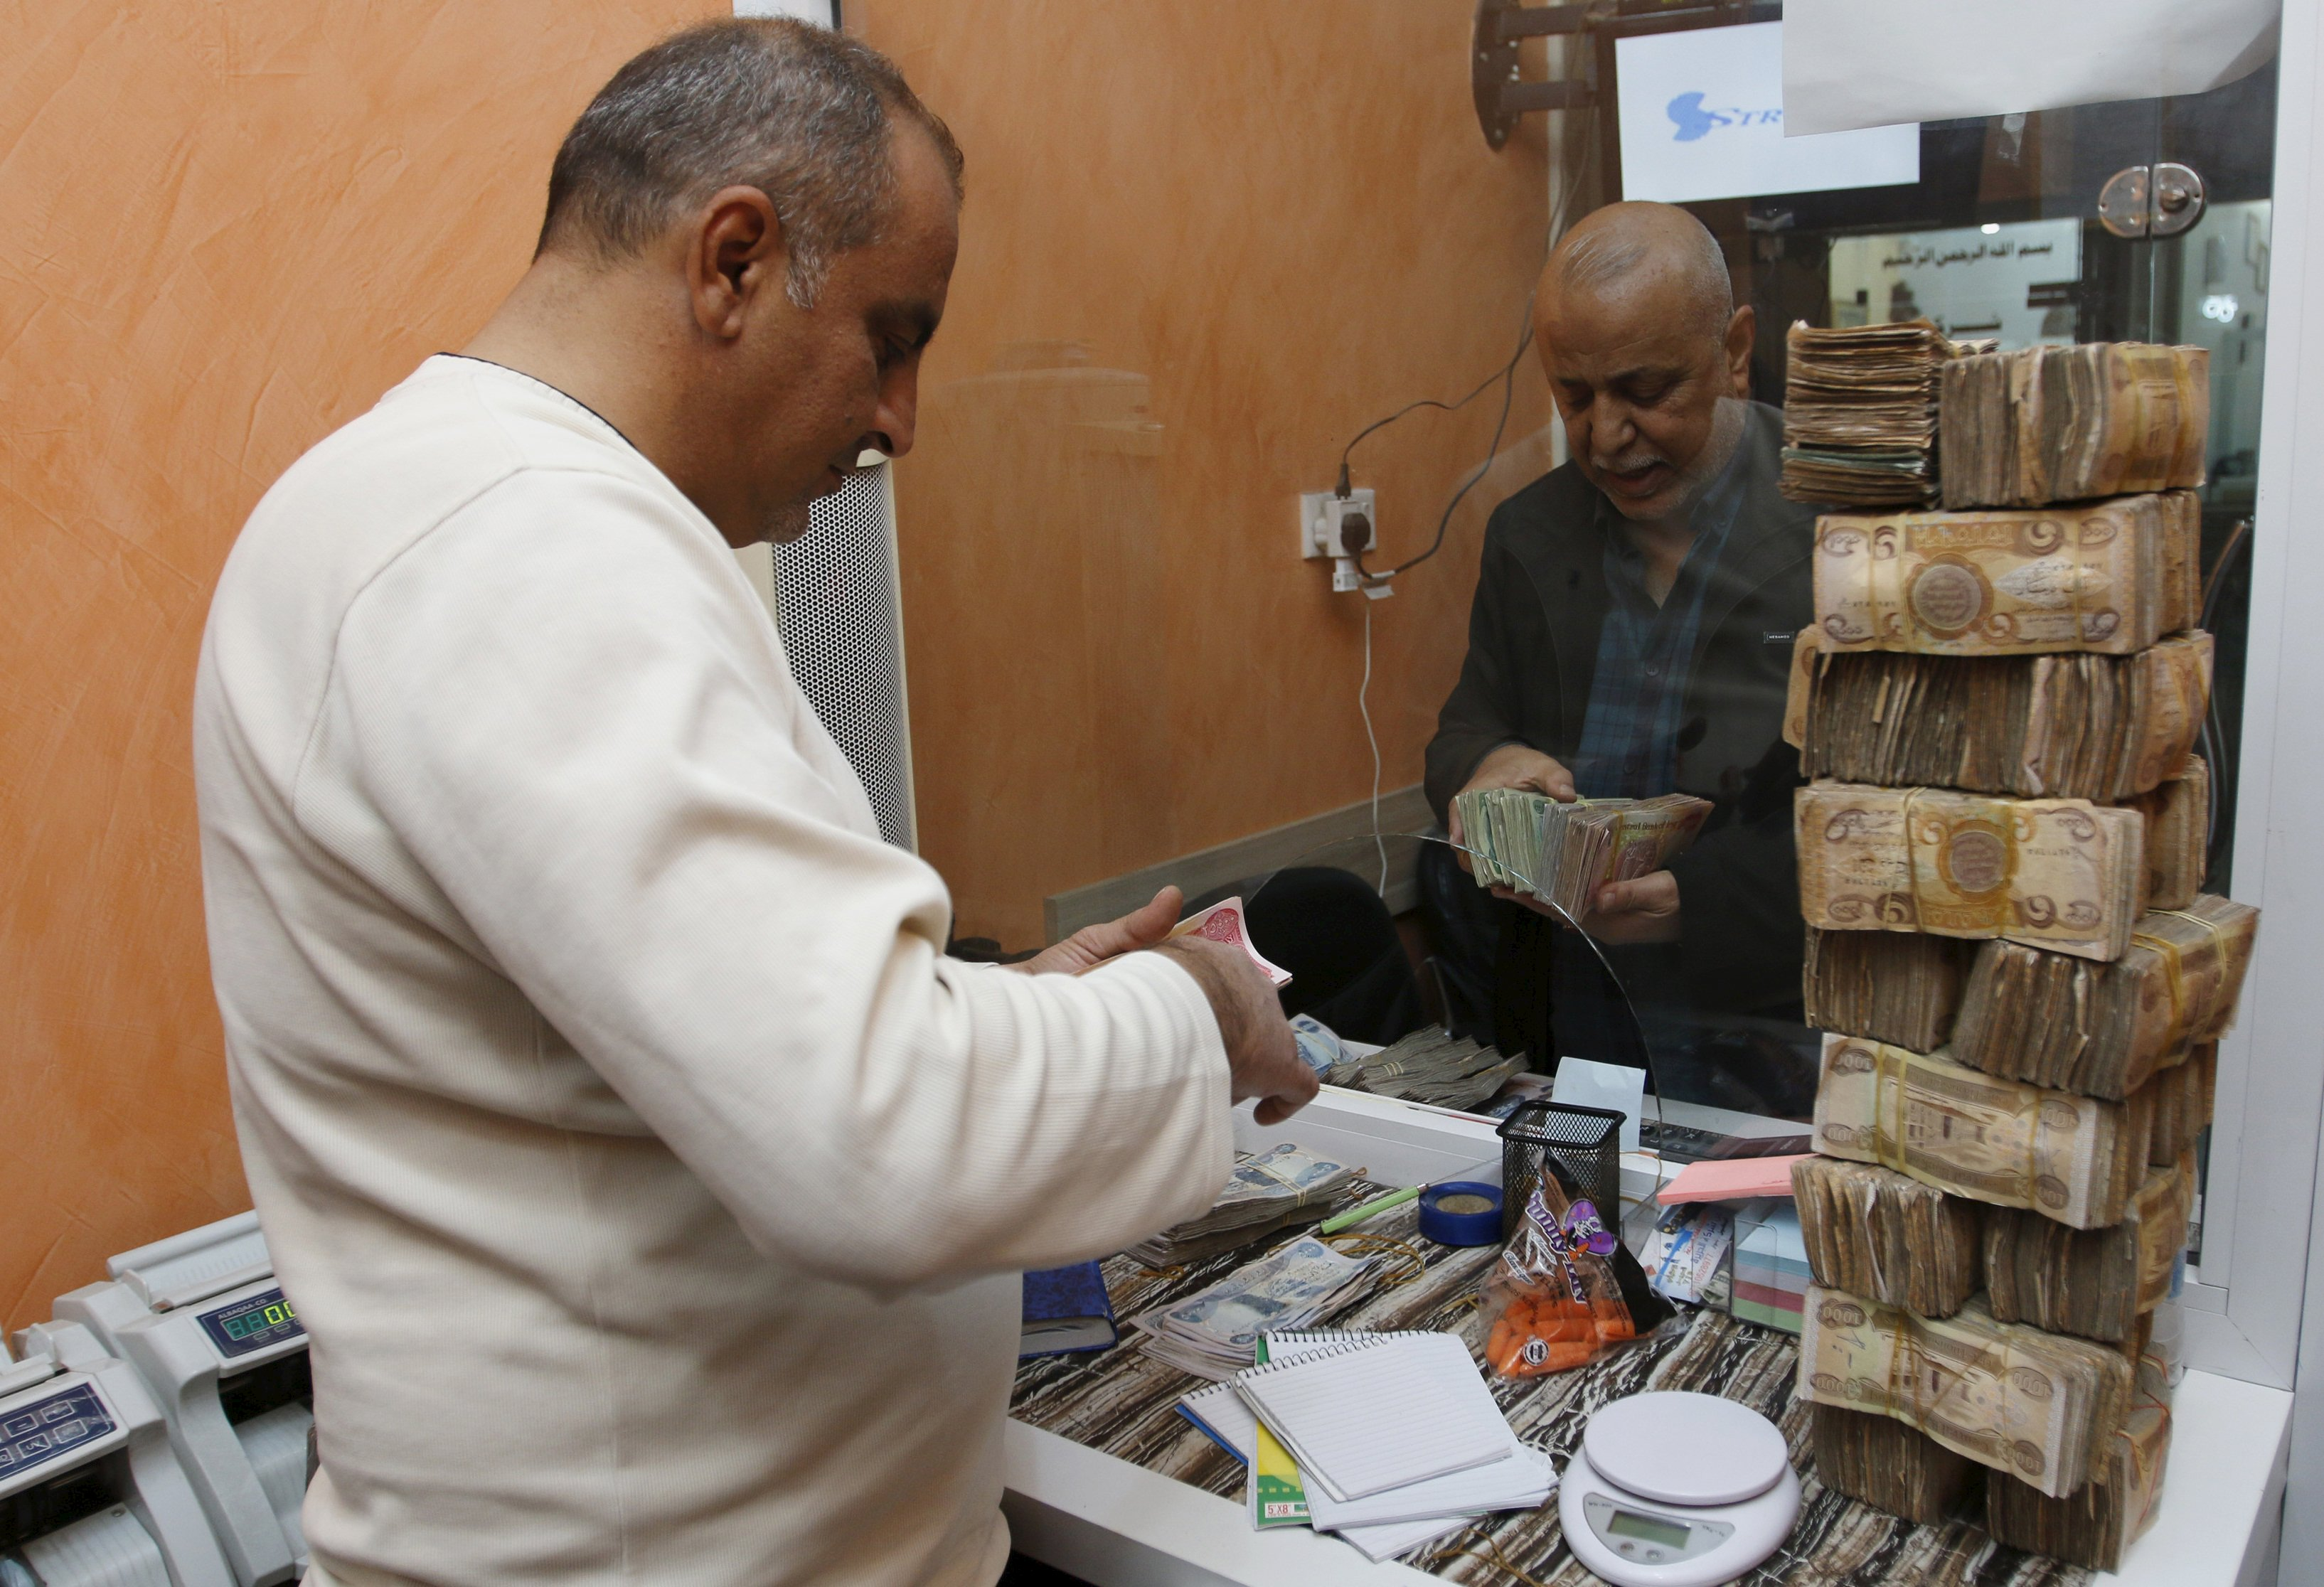 A man (R) changes US dollars to Iraqi dinars at a currency exchange shop in Baghdad. (Reuters)